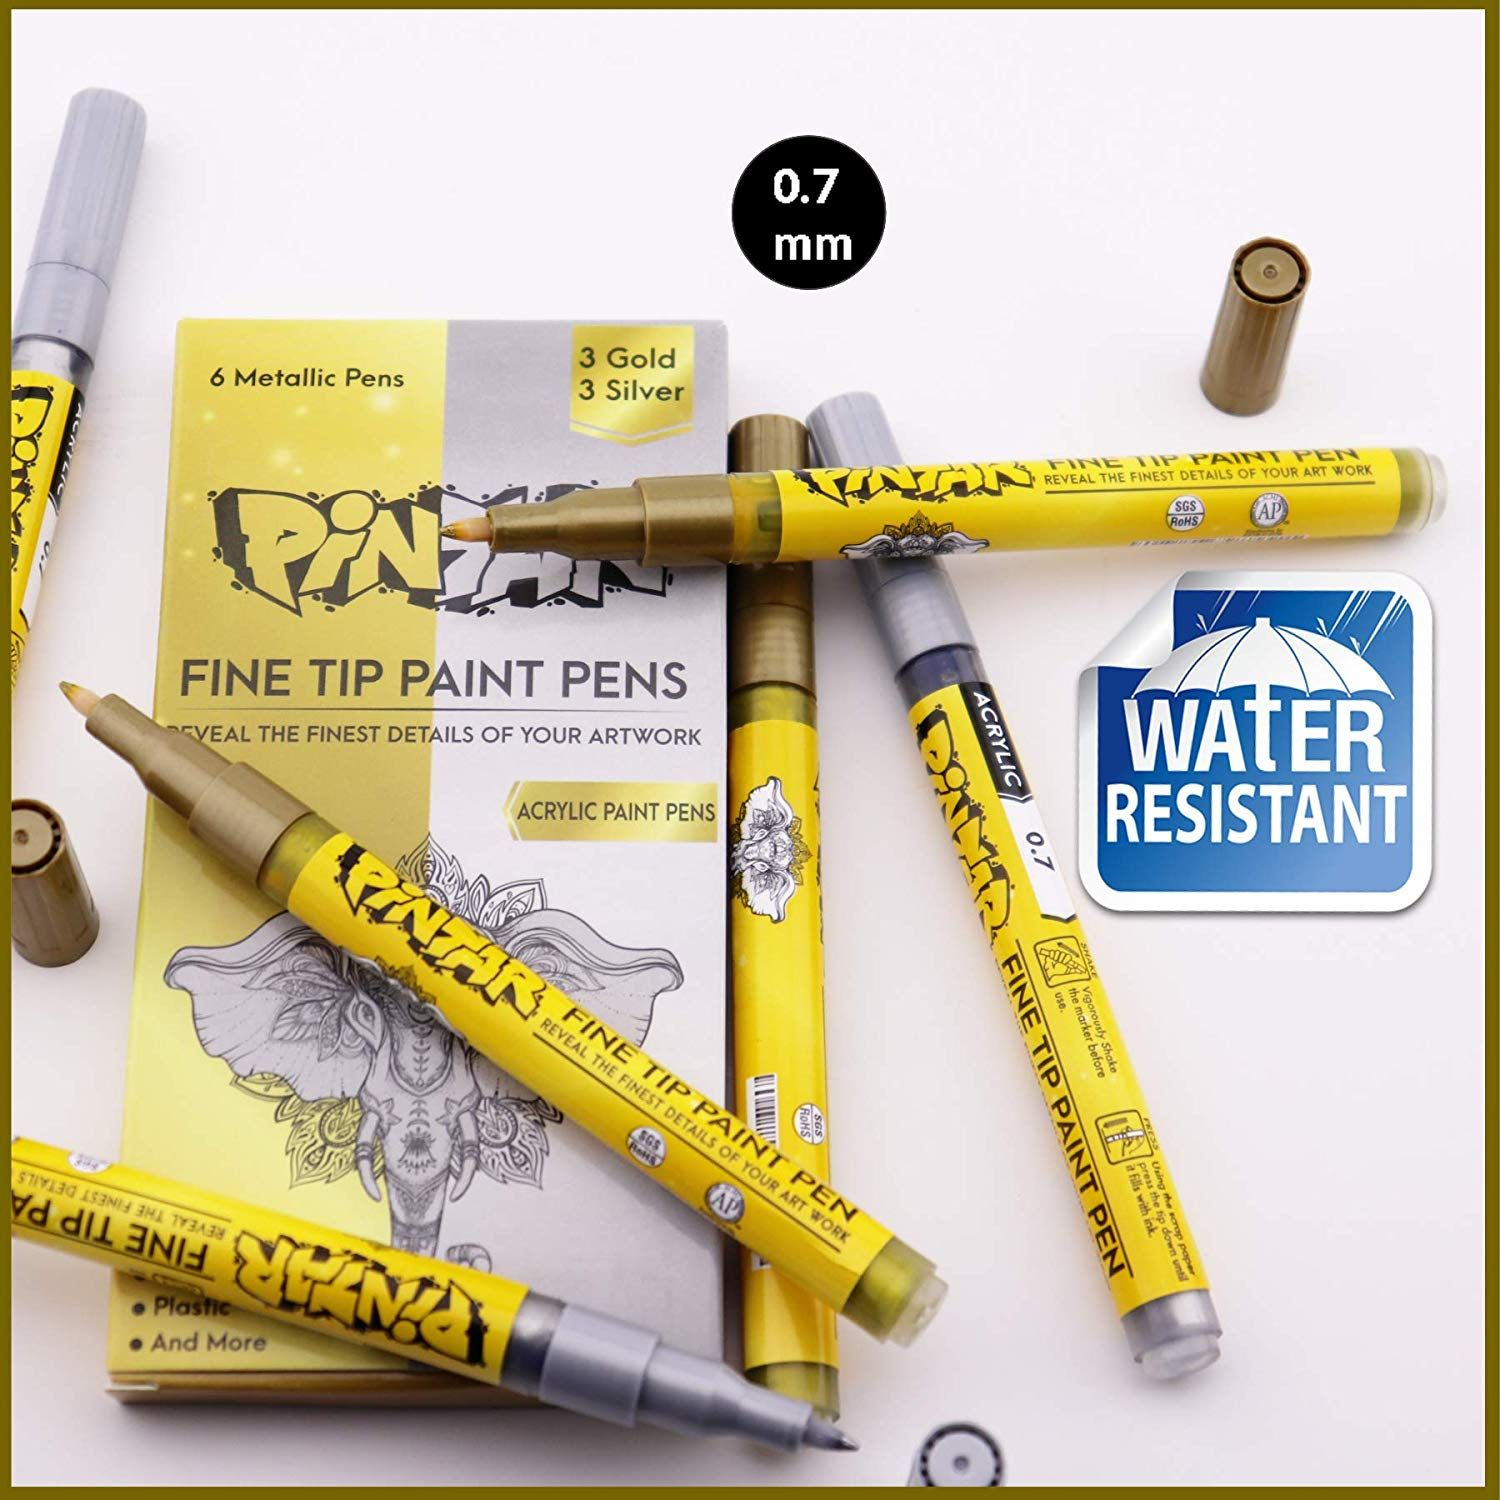 Metal and Ceramic PINTAR Water Resistant and Quick Drying Ink For Arts /& Crafts 6 Pack Glass Vibrant Colors for Wood 3 Gold And 3 Silver Acrylic Fine Tip Paint Pens For Rock Painting Art -